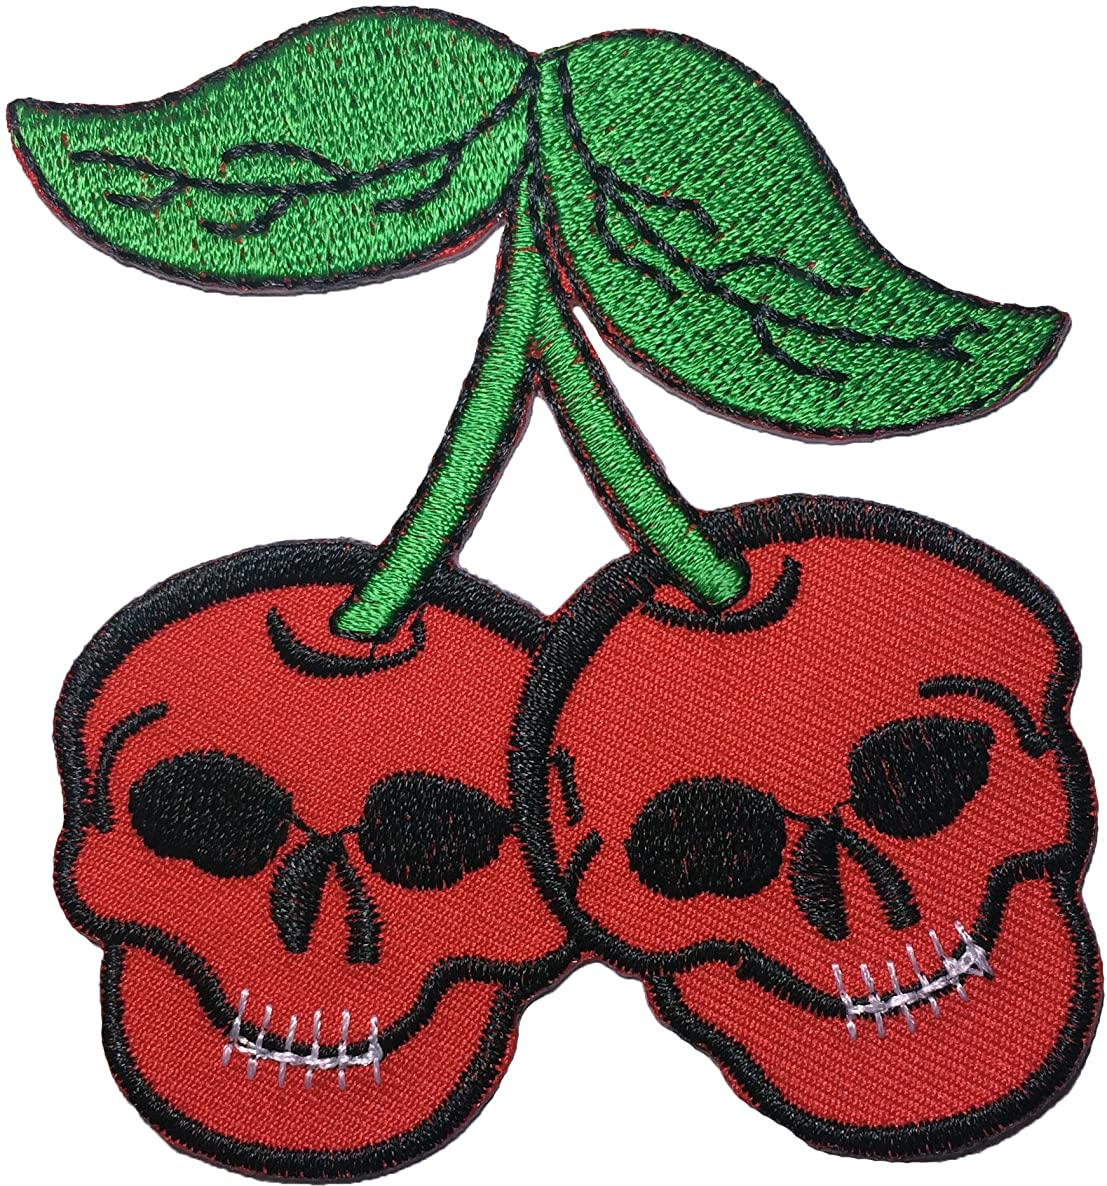 Papapatch Cherry Sugar Candy Ghost Skeleton Skull Punk Rock Heavy Metal Sew Iron on Embroidered Applique Badge Sign Patch (IRON-CHERRY-SKULL)